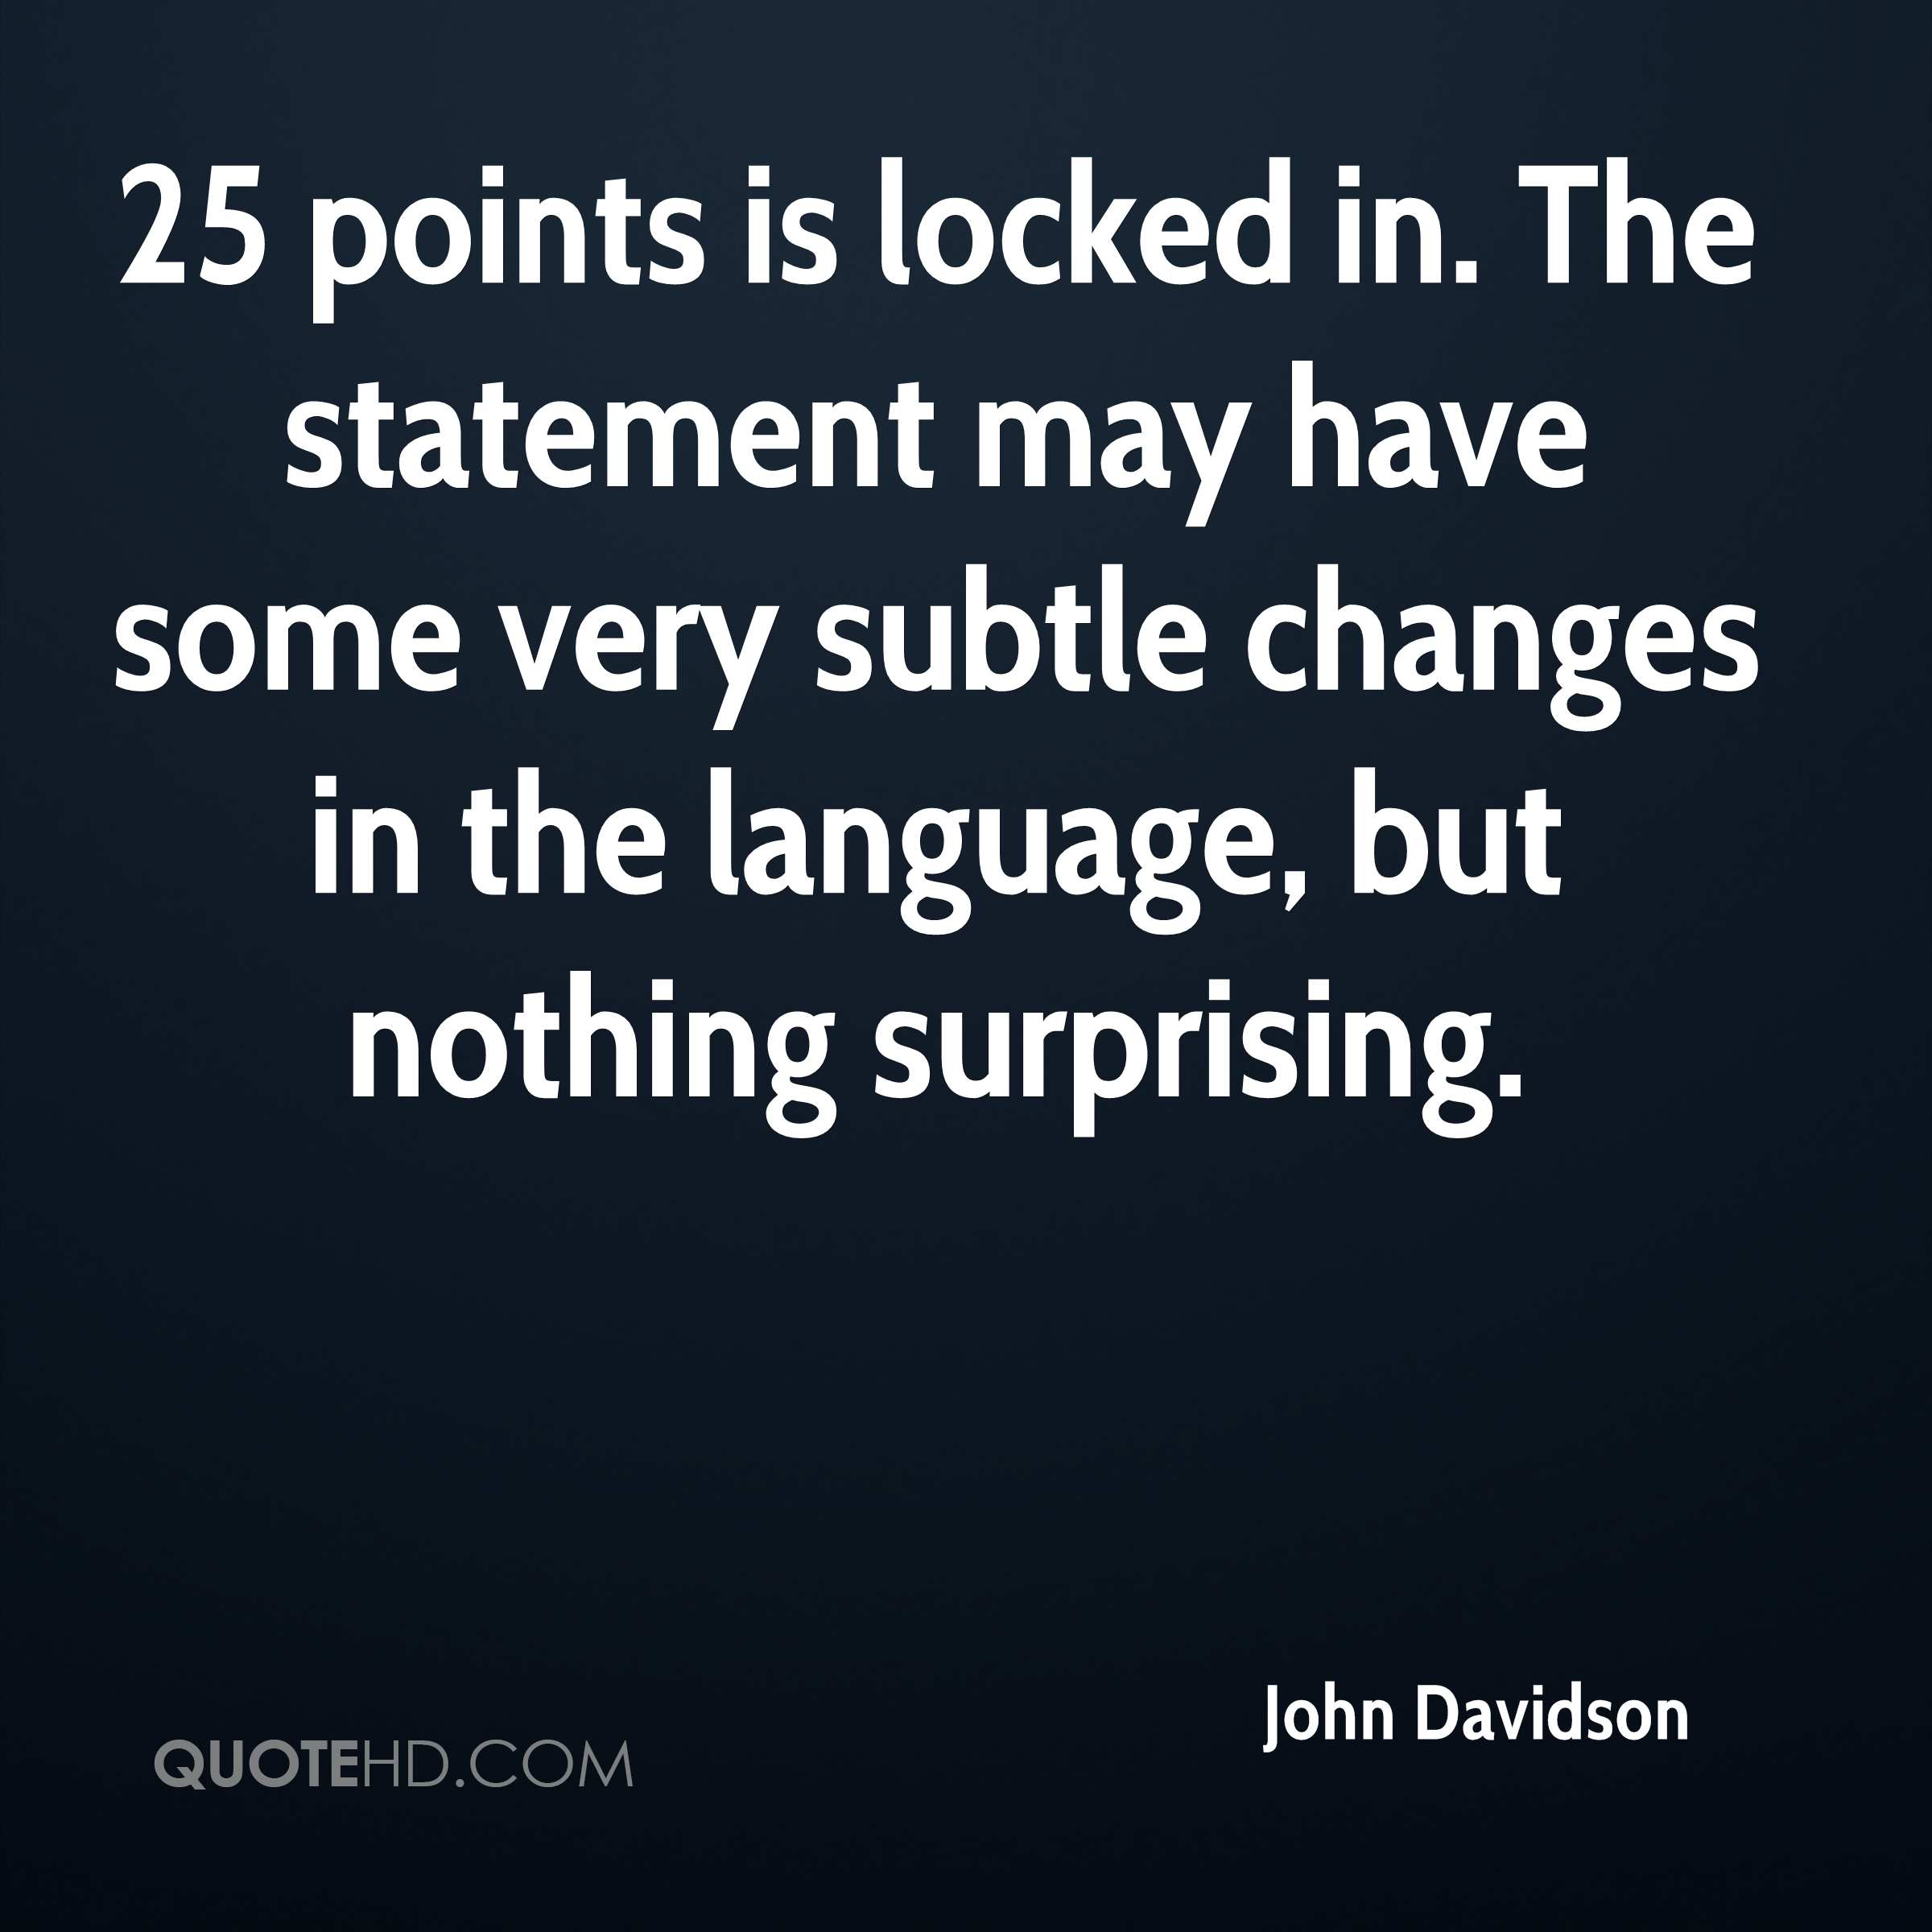 25 points is locked in. The statement may have some very subtle changes in the language, but nothing surprising.